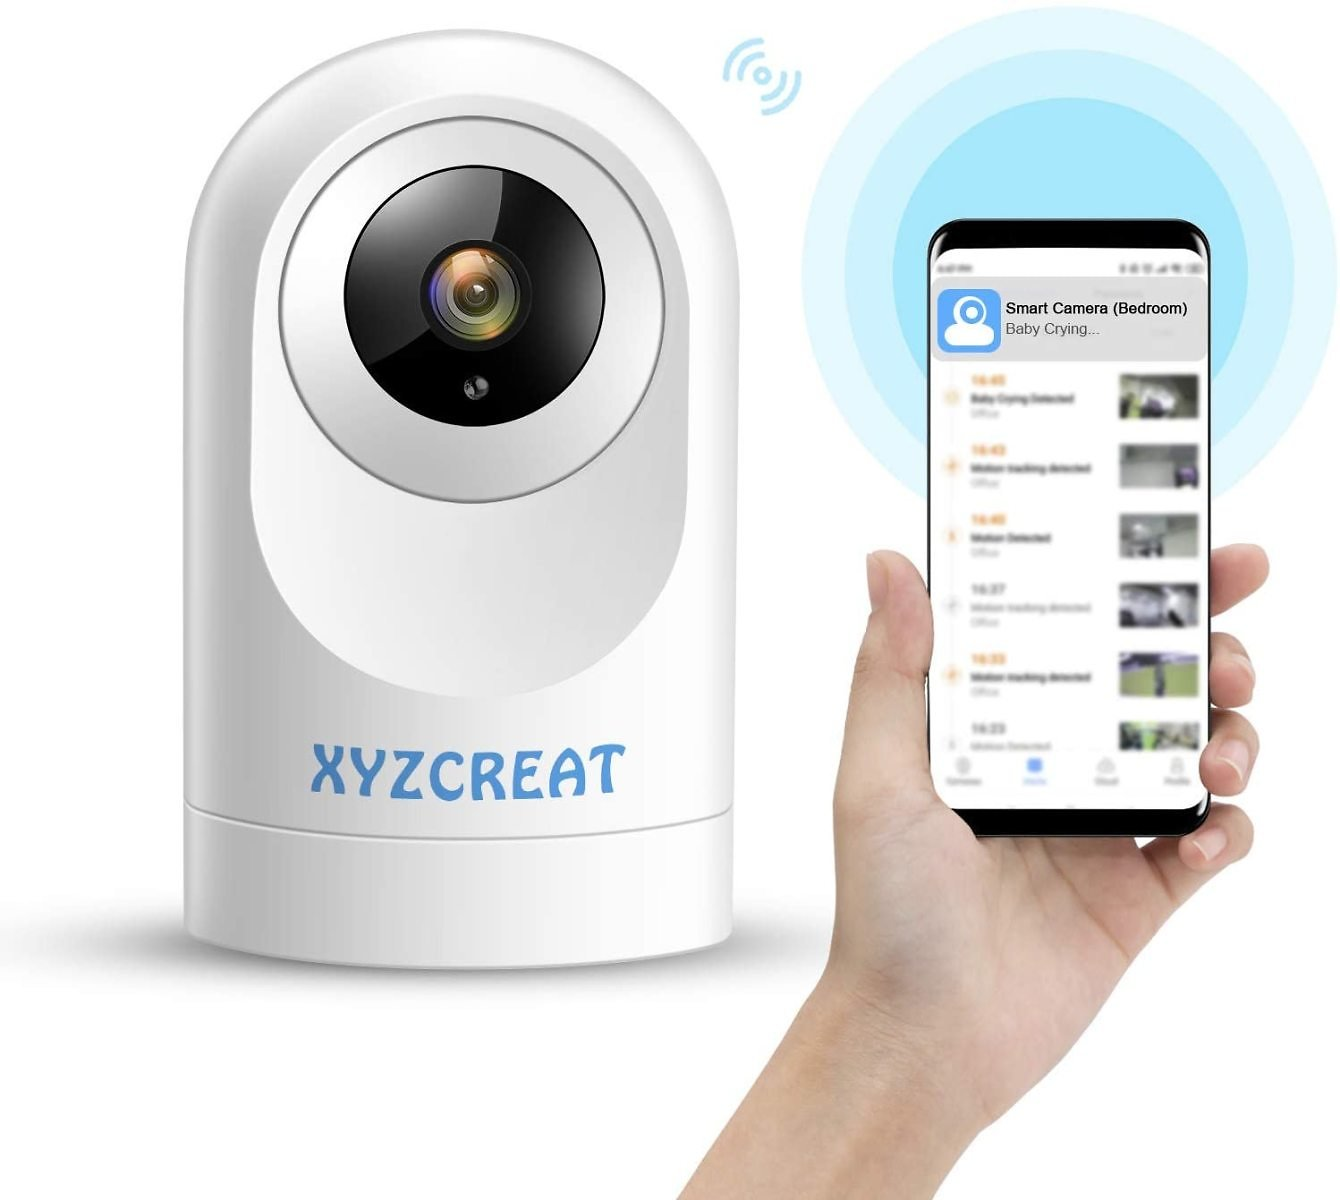 XYZCREAT 1080p Home Security Camera Wireless Cameras Work with Alexa Smart Home Camera with Motion Detection/Night Vision/2-Way